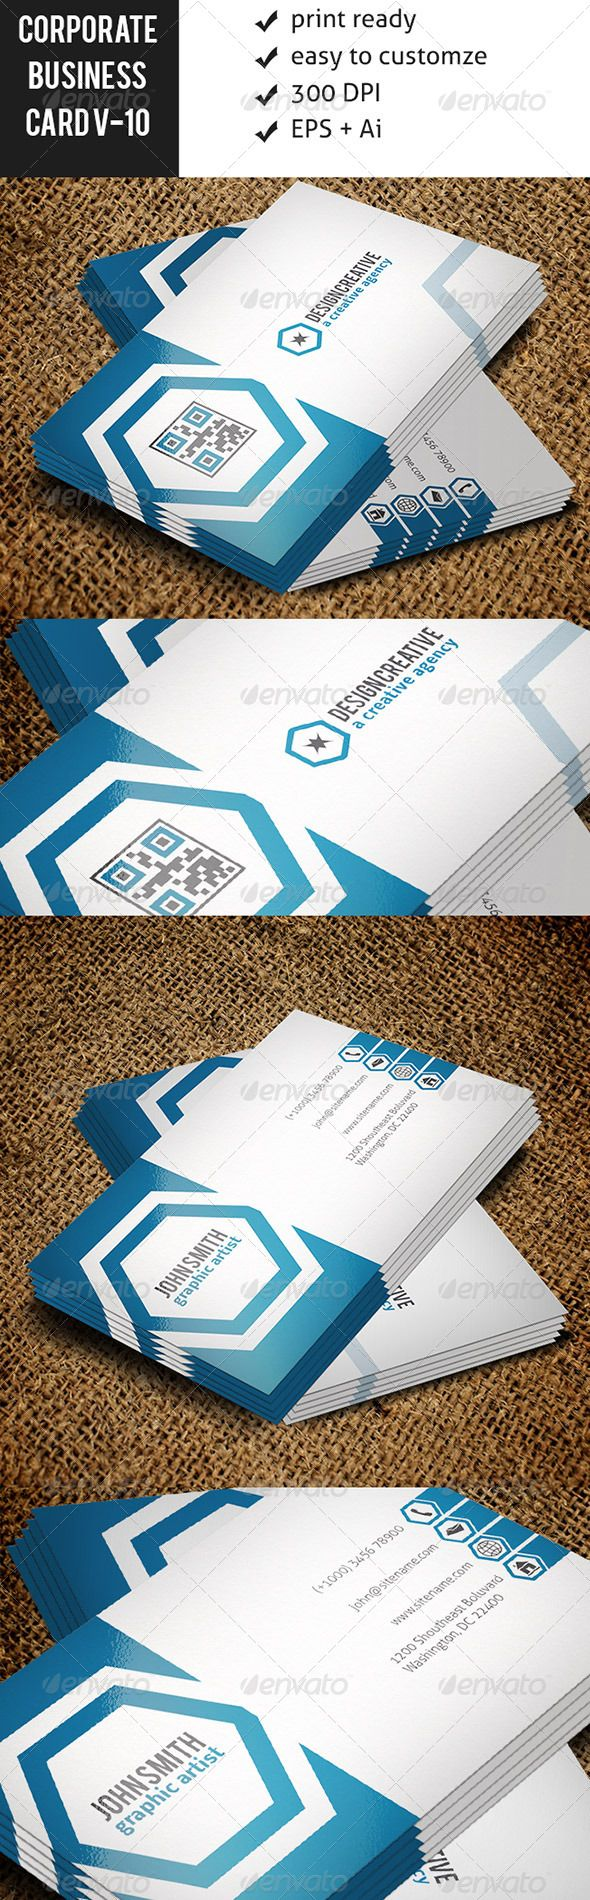 112 best print templates images on pinterest modelos de impresso corporate business card vo 10 reheart Image collections